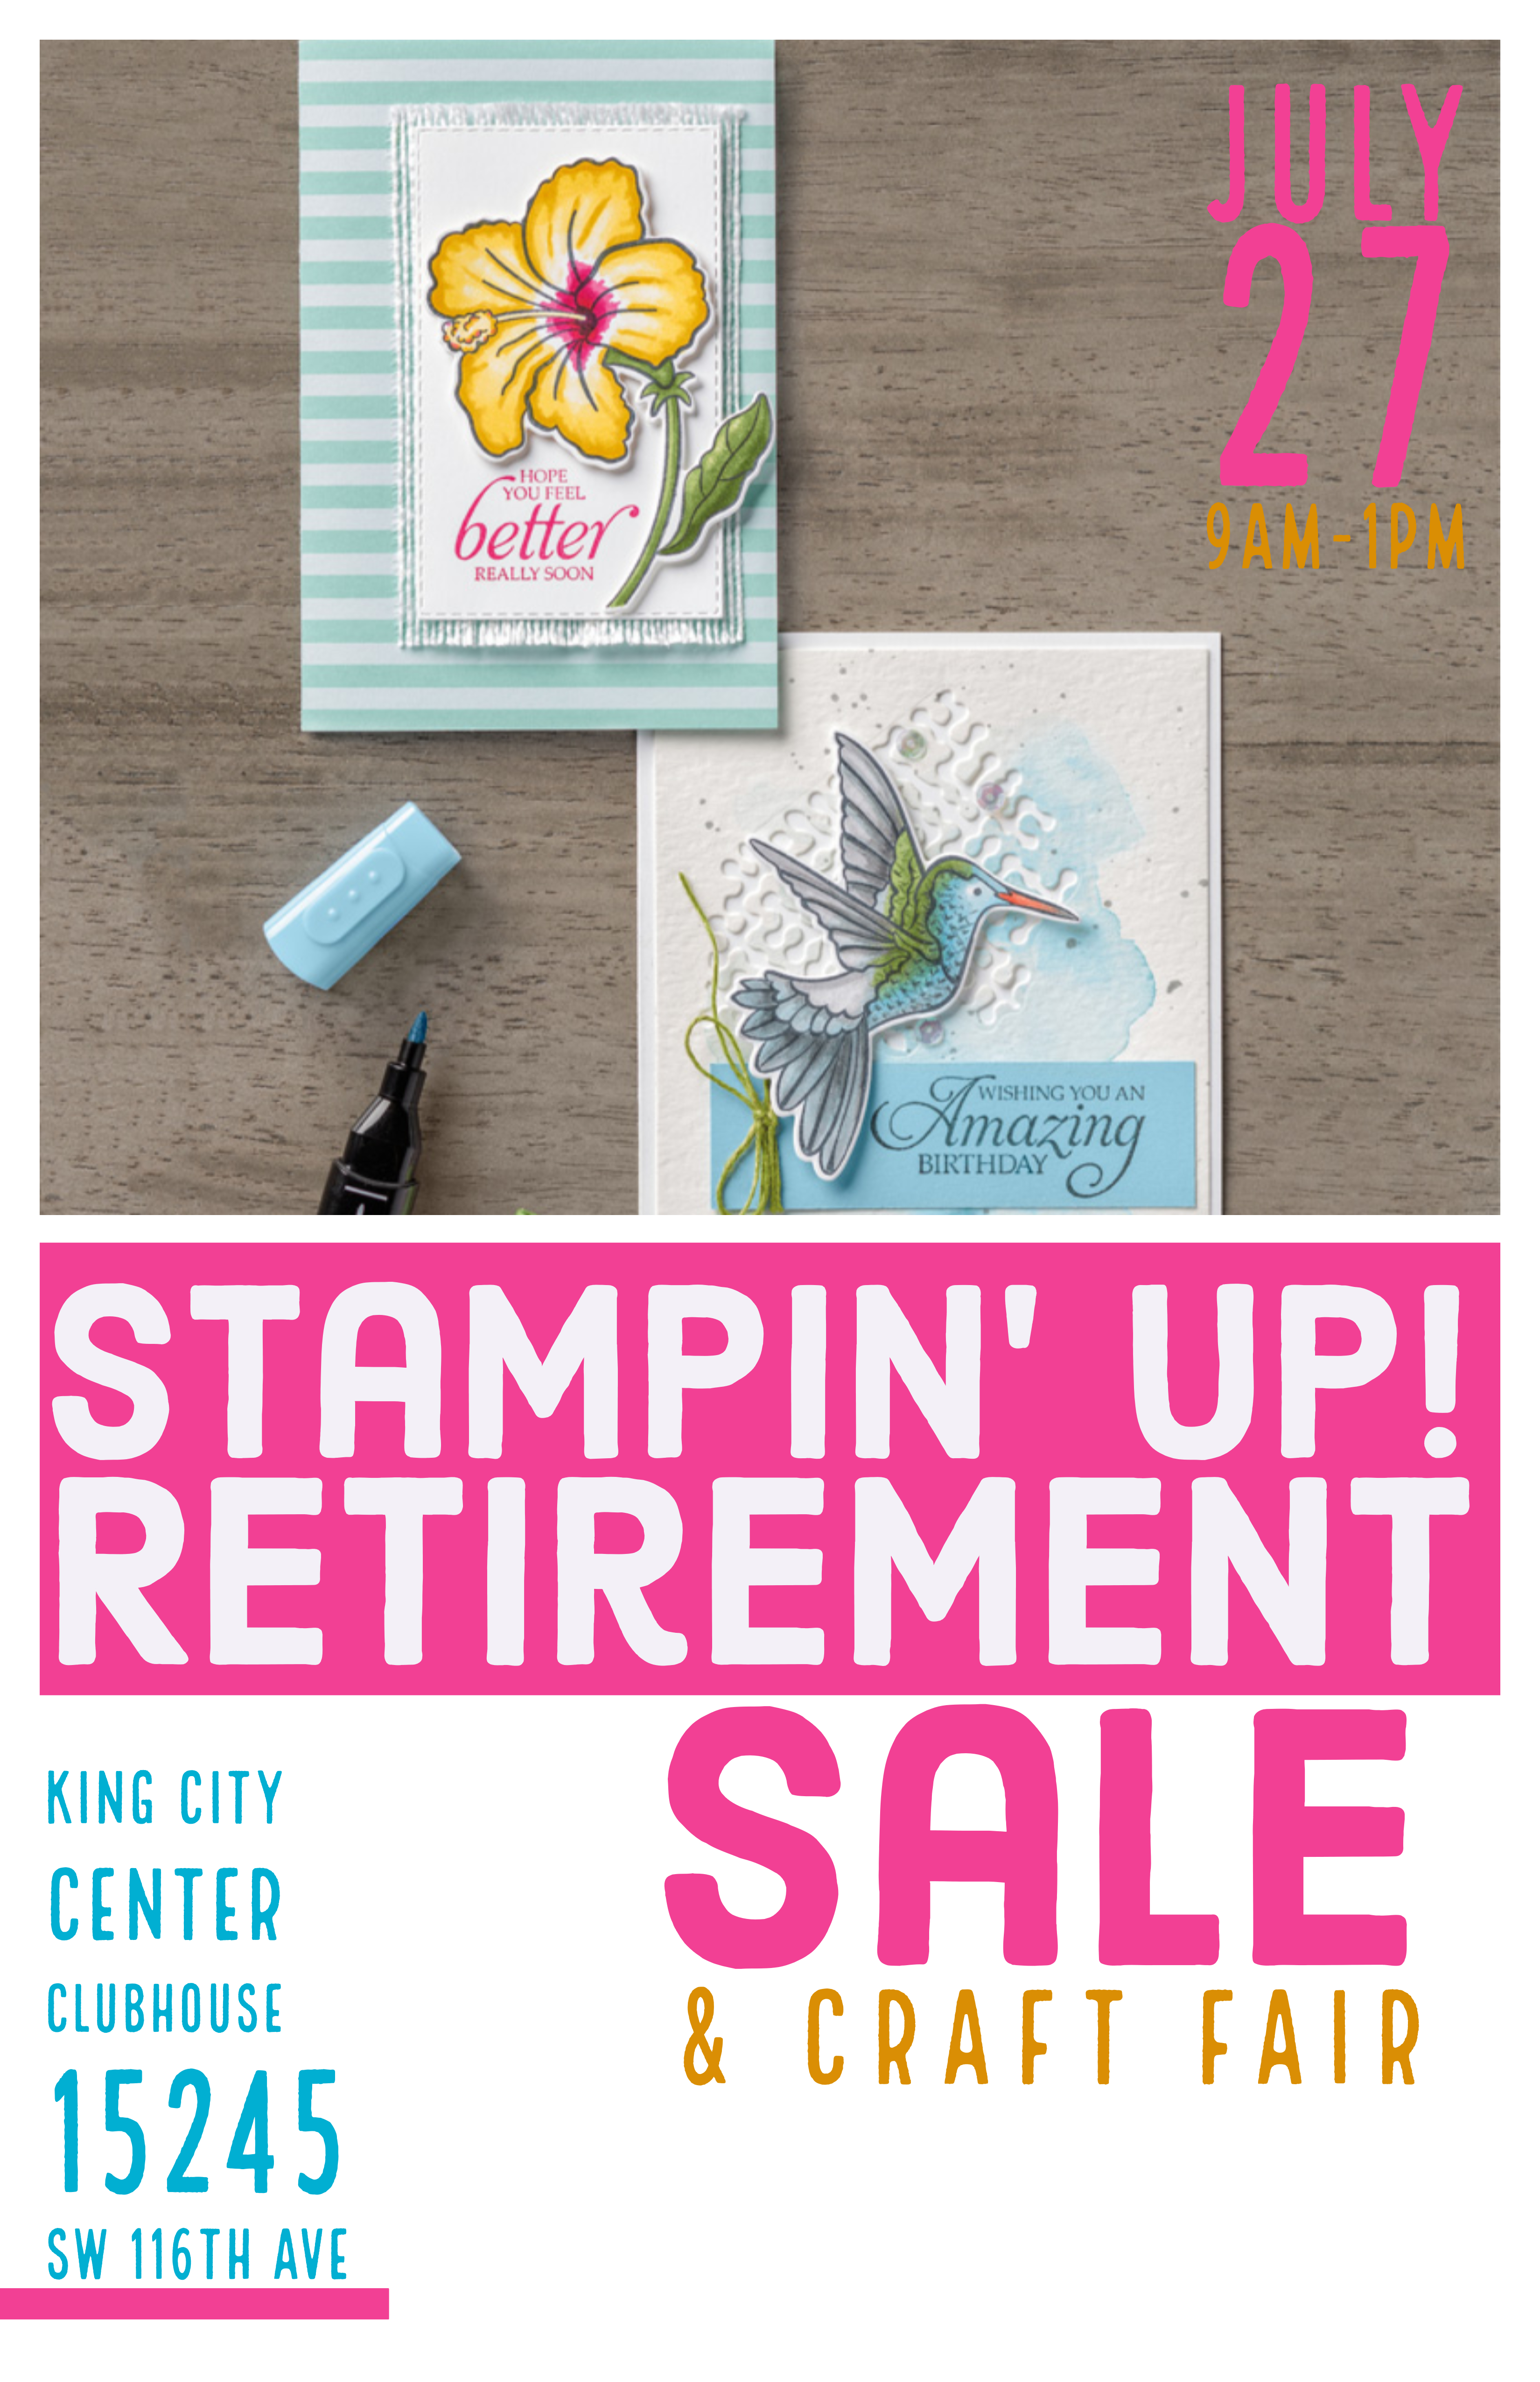 Stampin' Up! Retirement Sale & Craft Fair